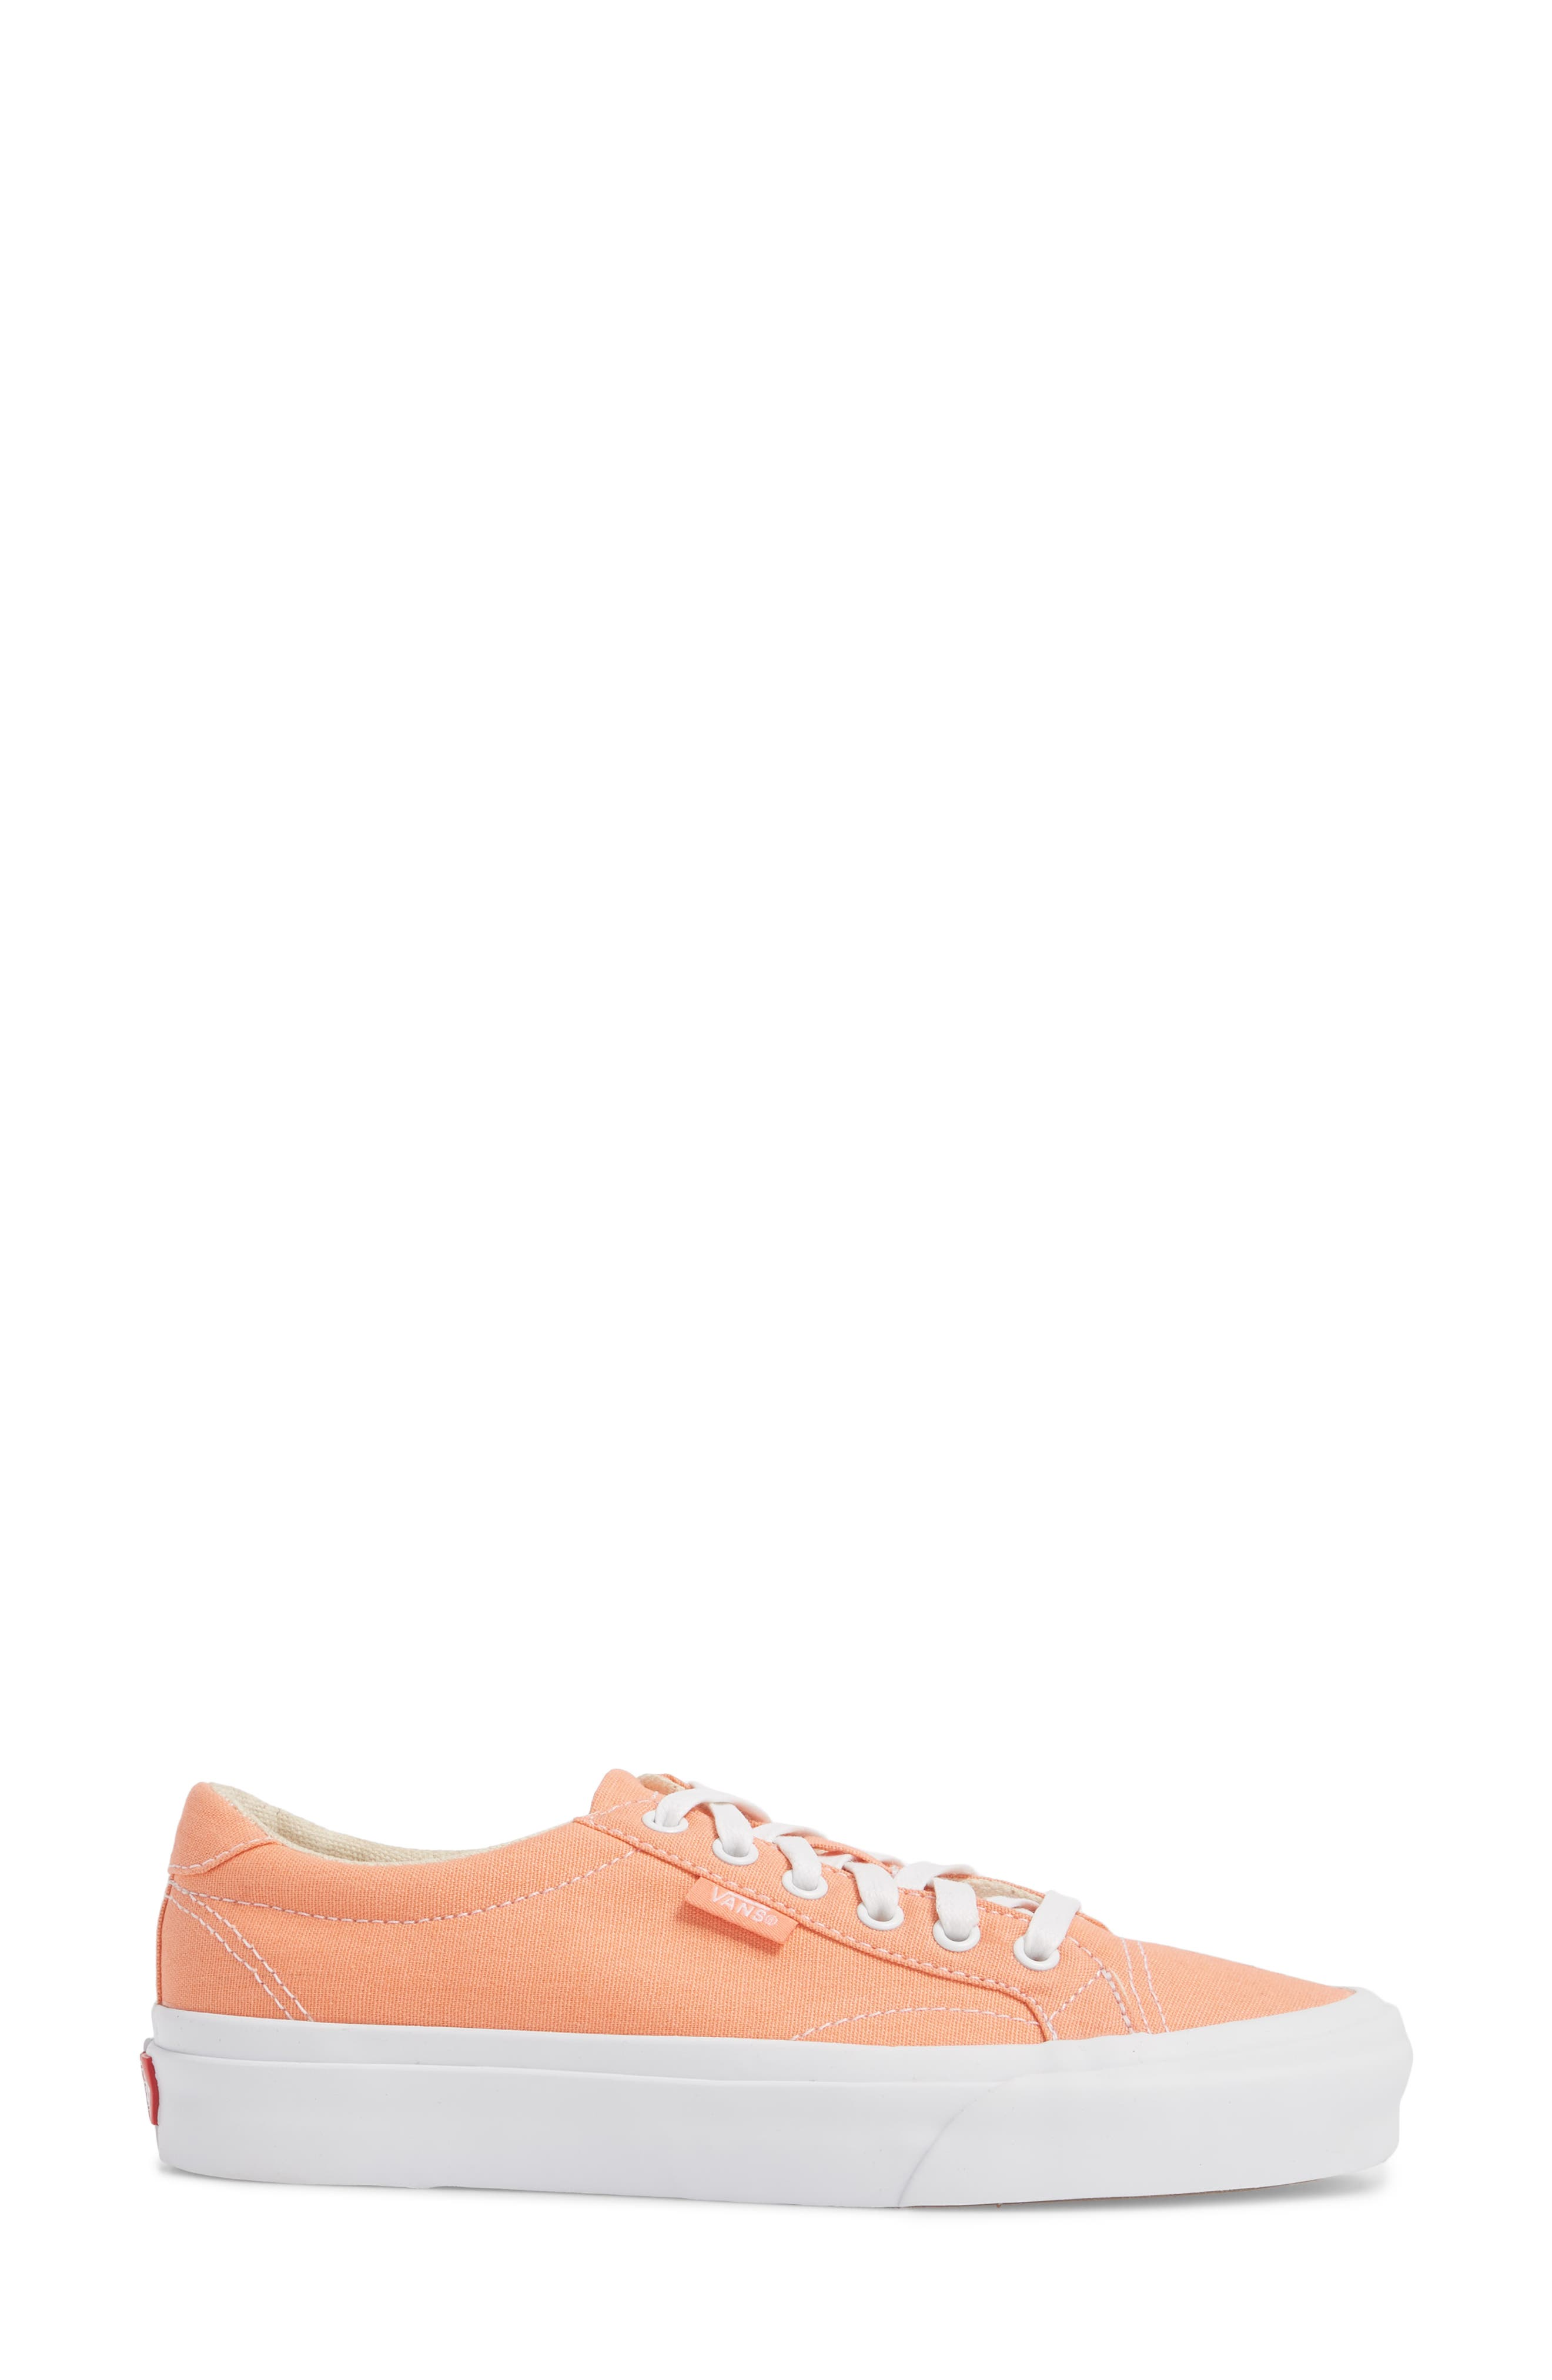 UA Court Low Top Sneaker,                             Alternate thumbnail 3, color,                             Peach Pink/ True White